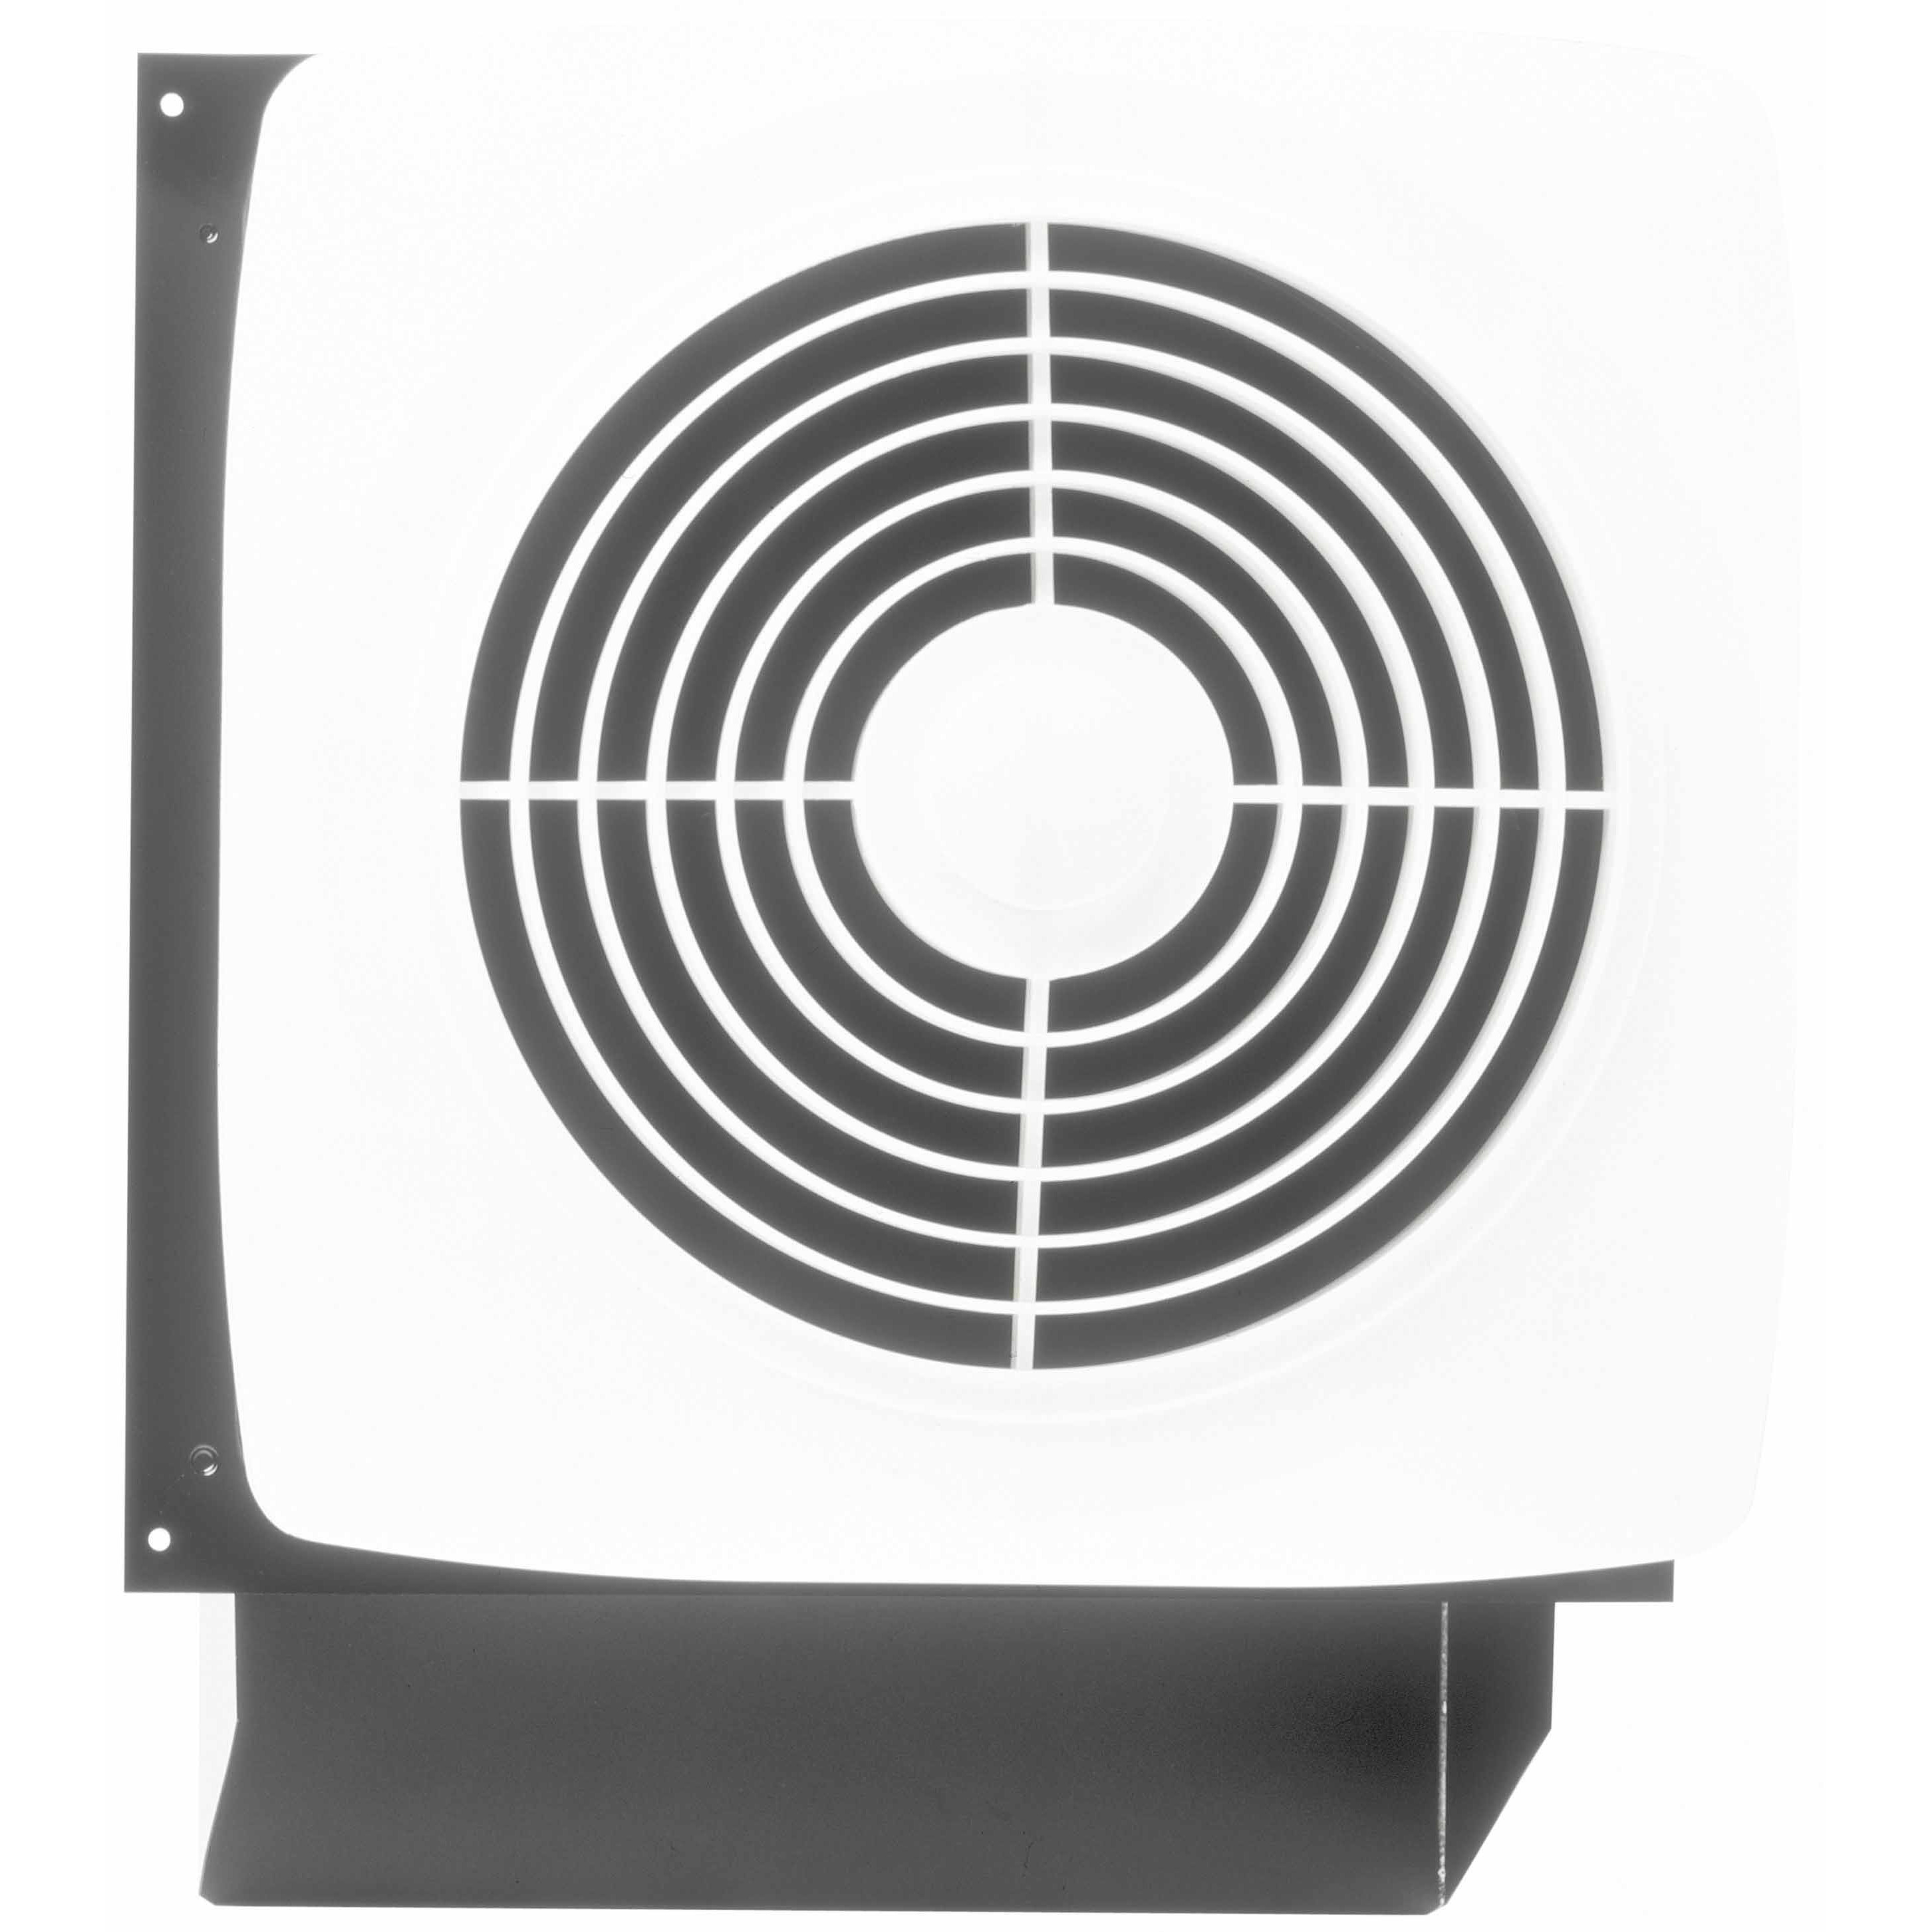 Bathroom Exhaust Fan Broan | Broan Bathroom Exhaust Fan Replacement Parts | Broan Bathroom Fan